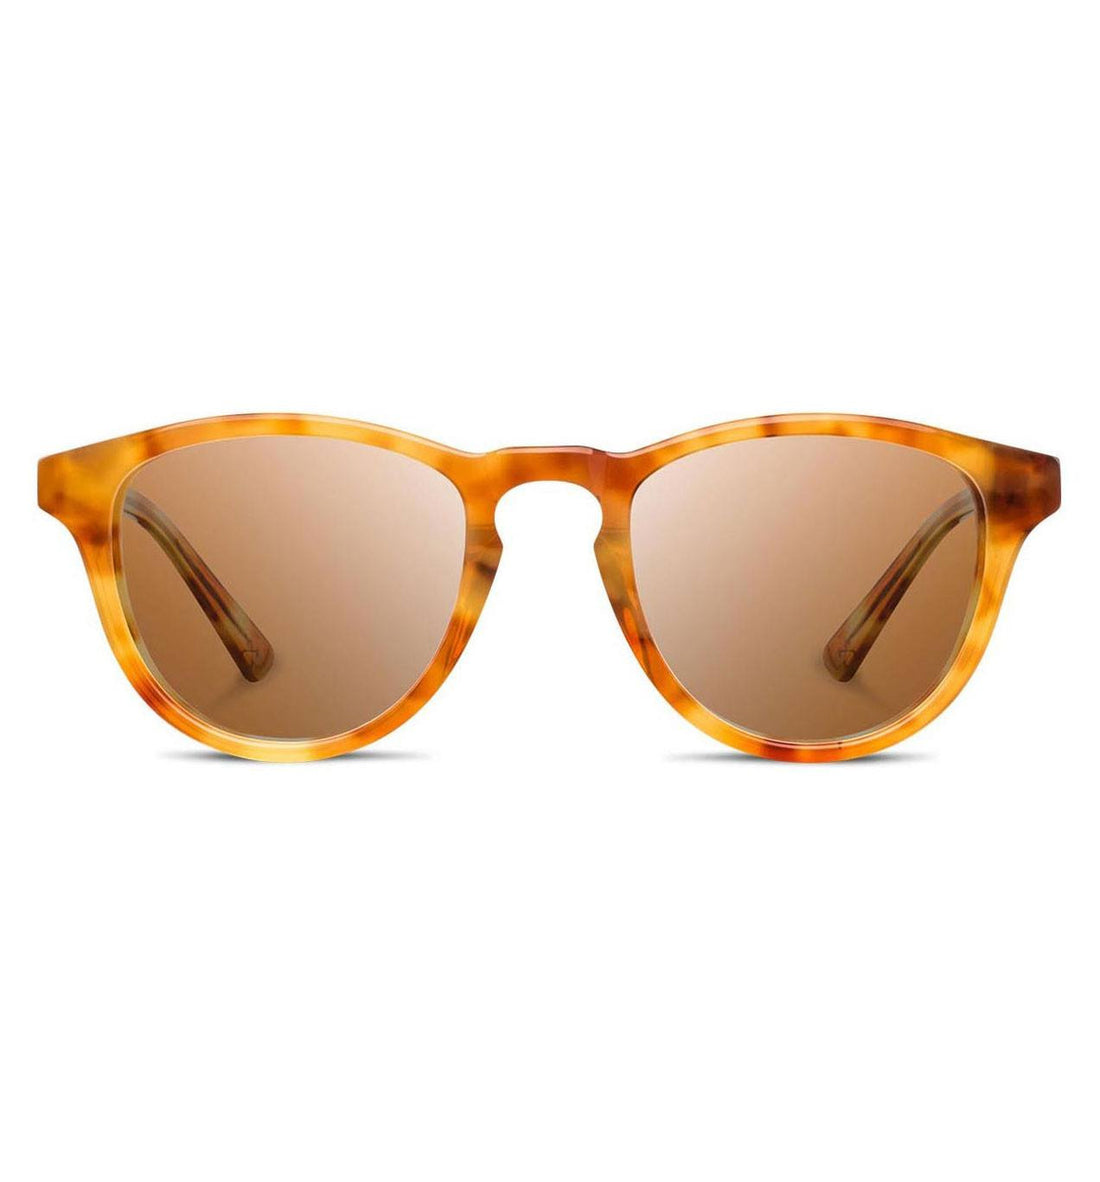 Shwood Francis - Accessories: Eyewear: Men's - Iron and Resin